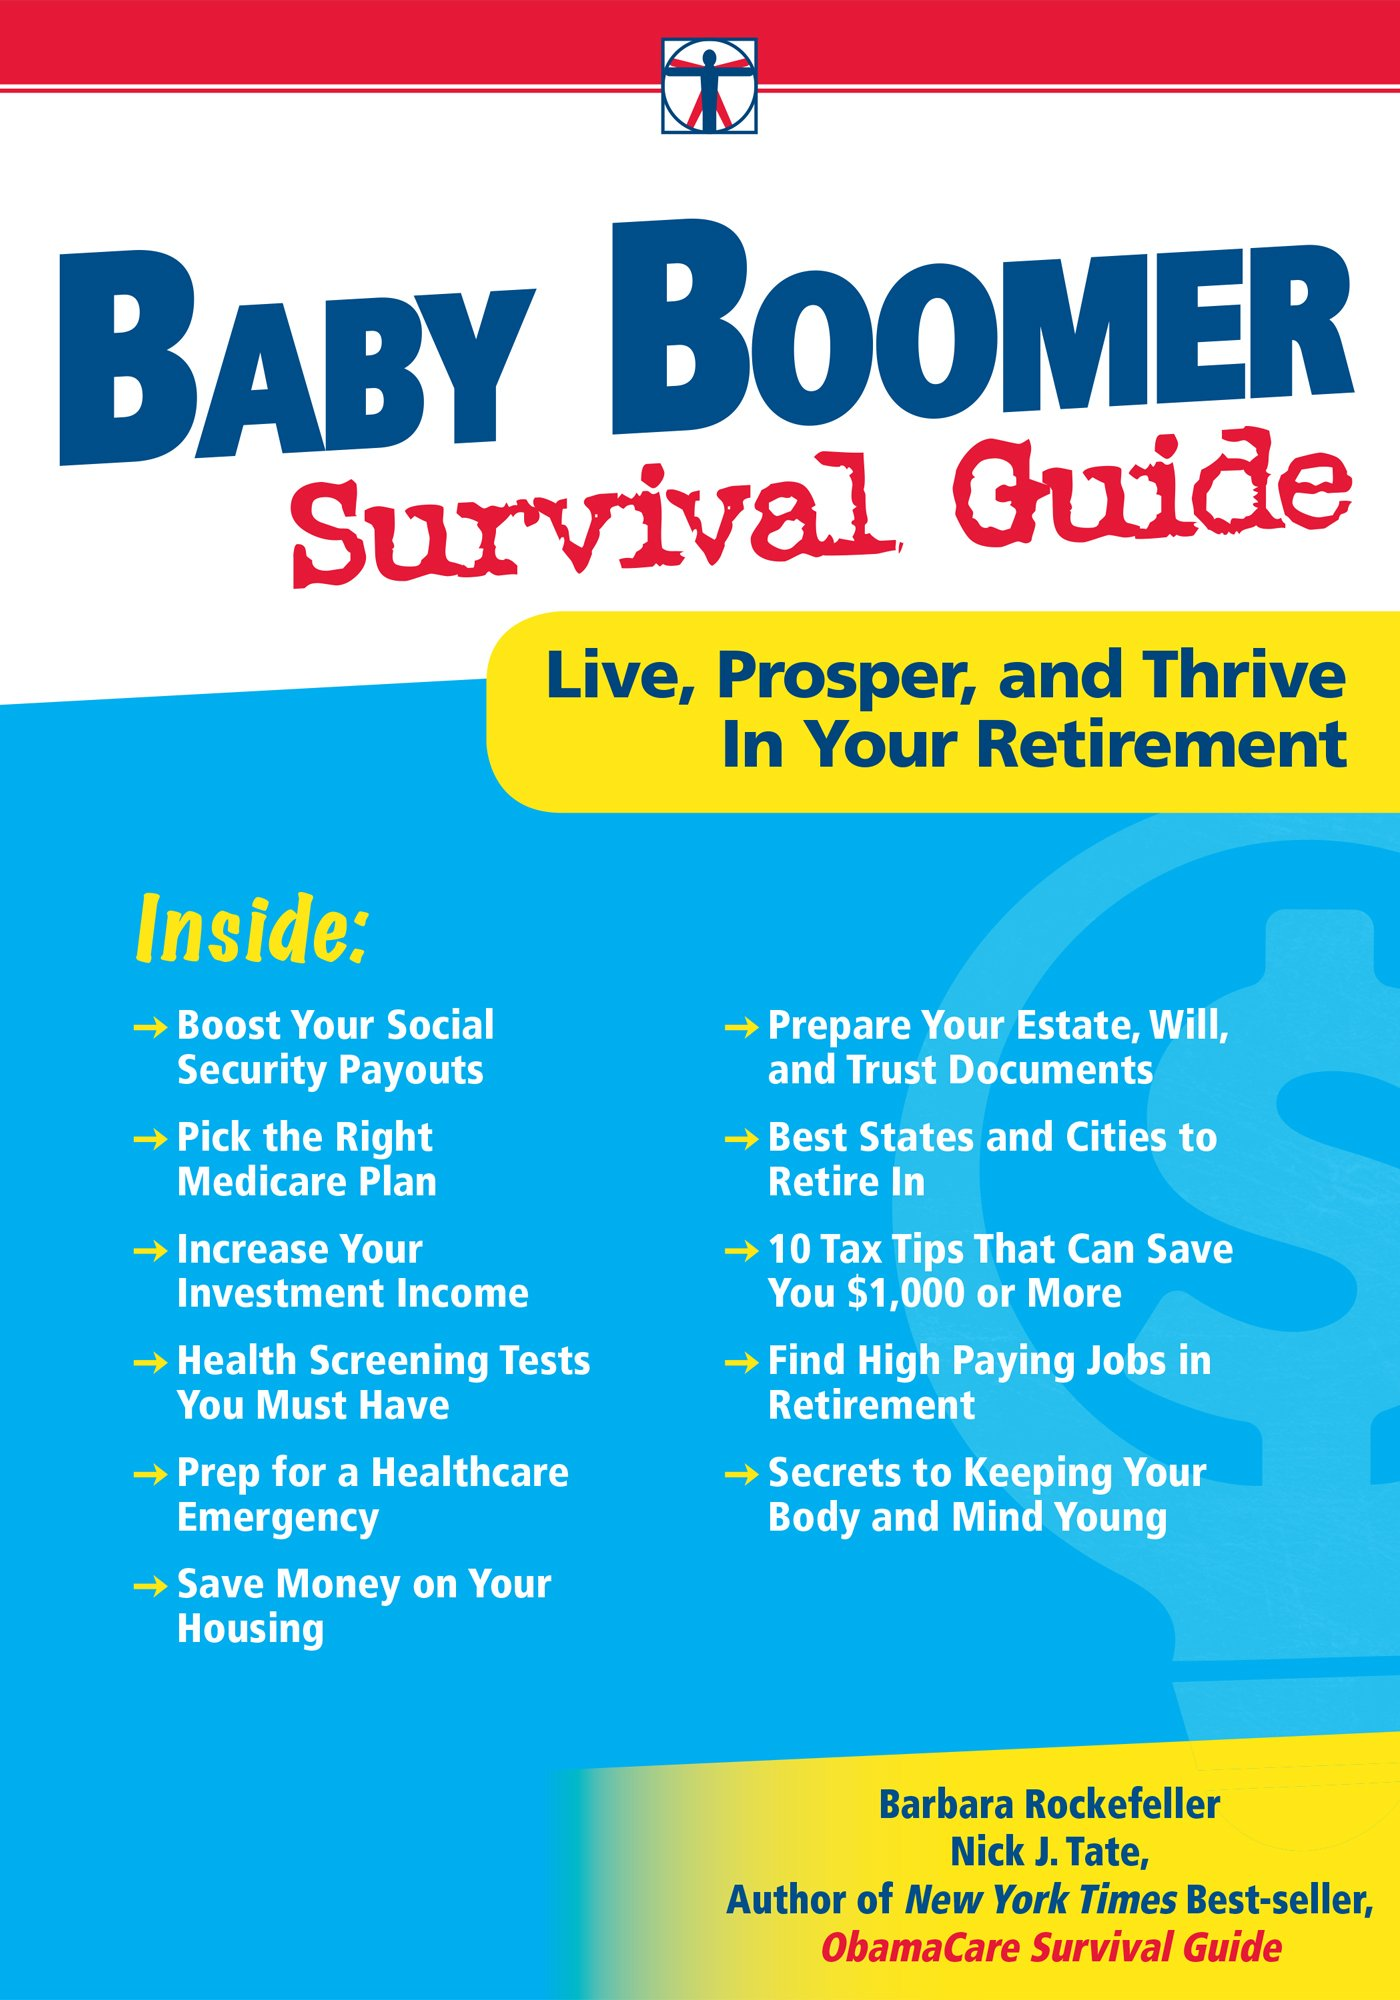 Baby Boomer Survival Guide Retirement product image